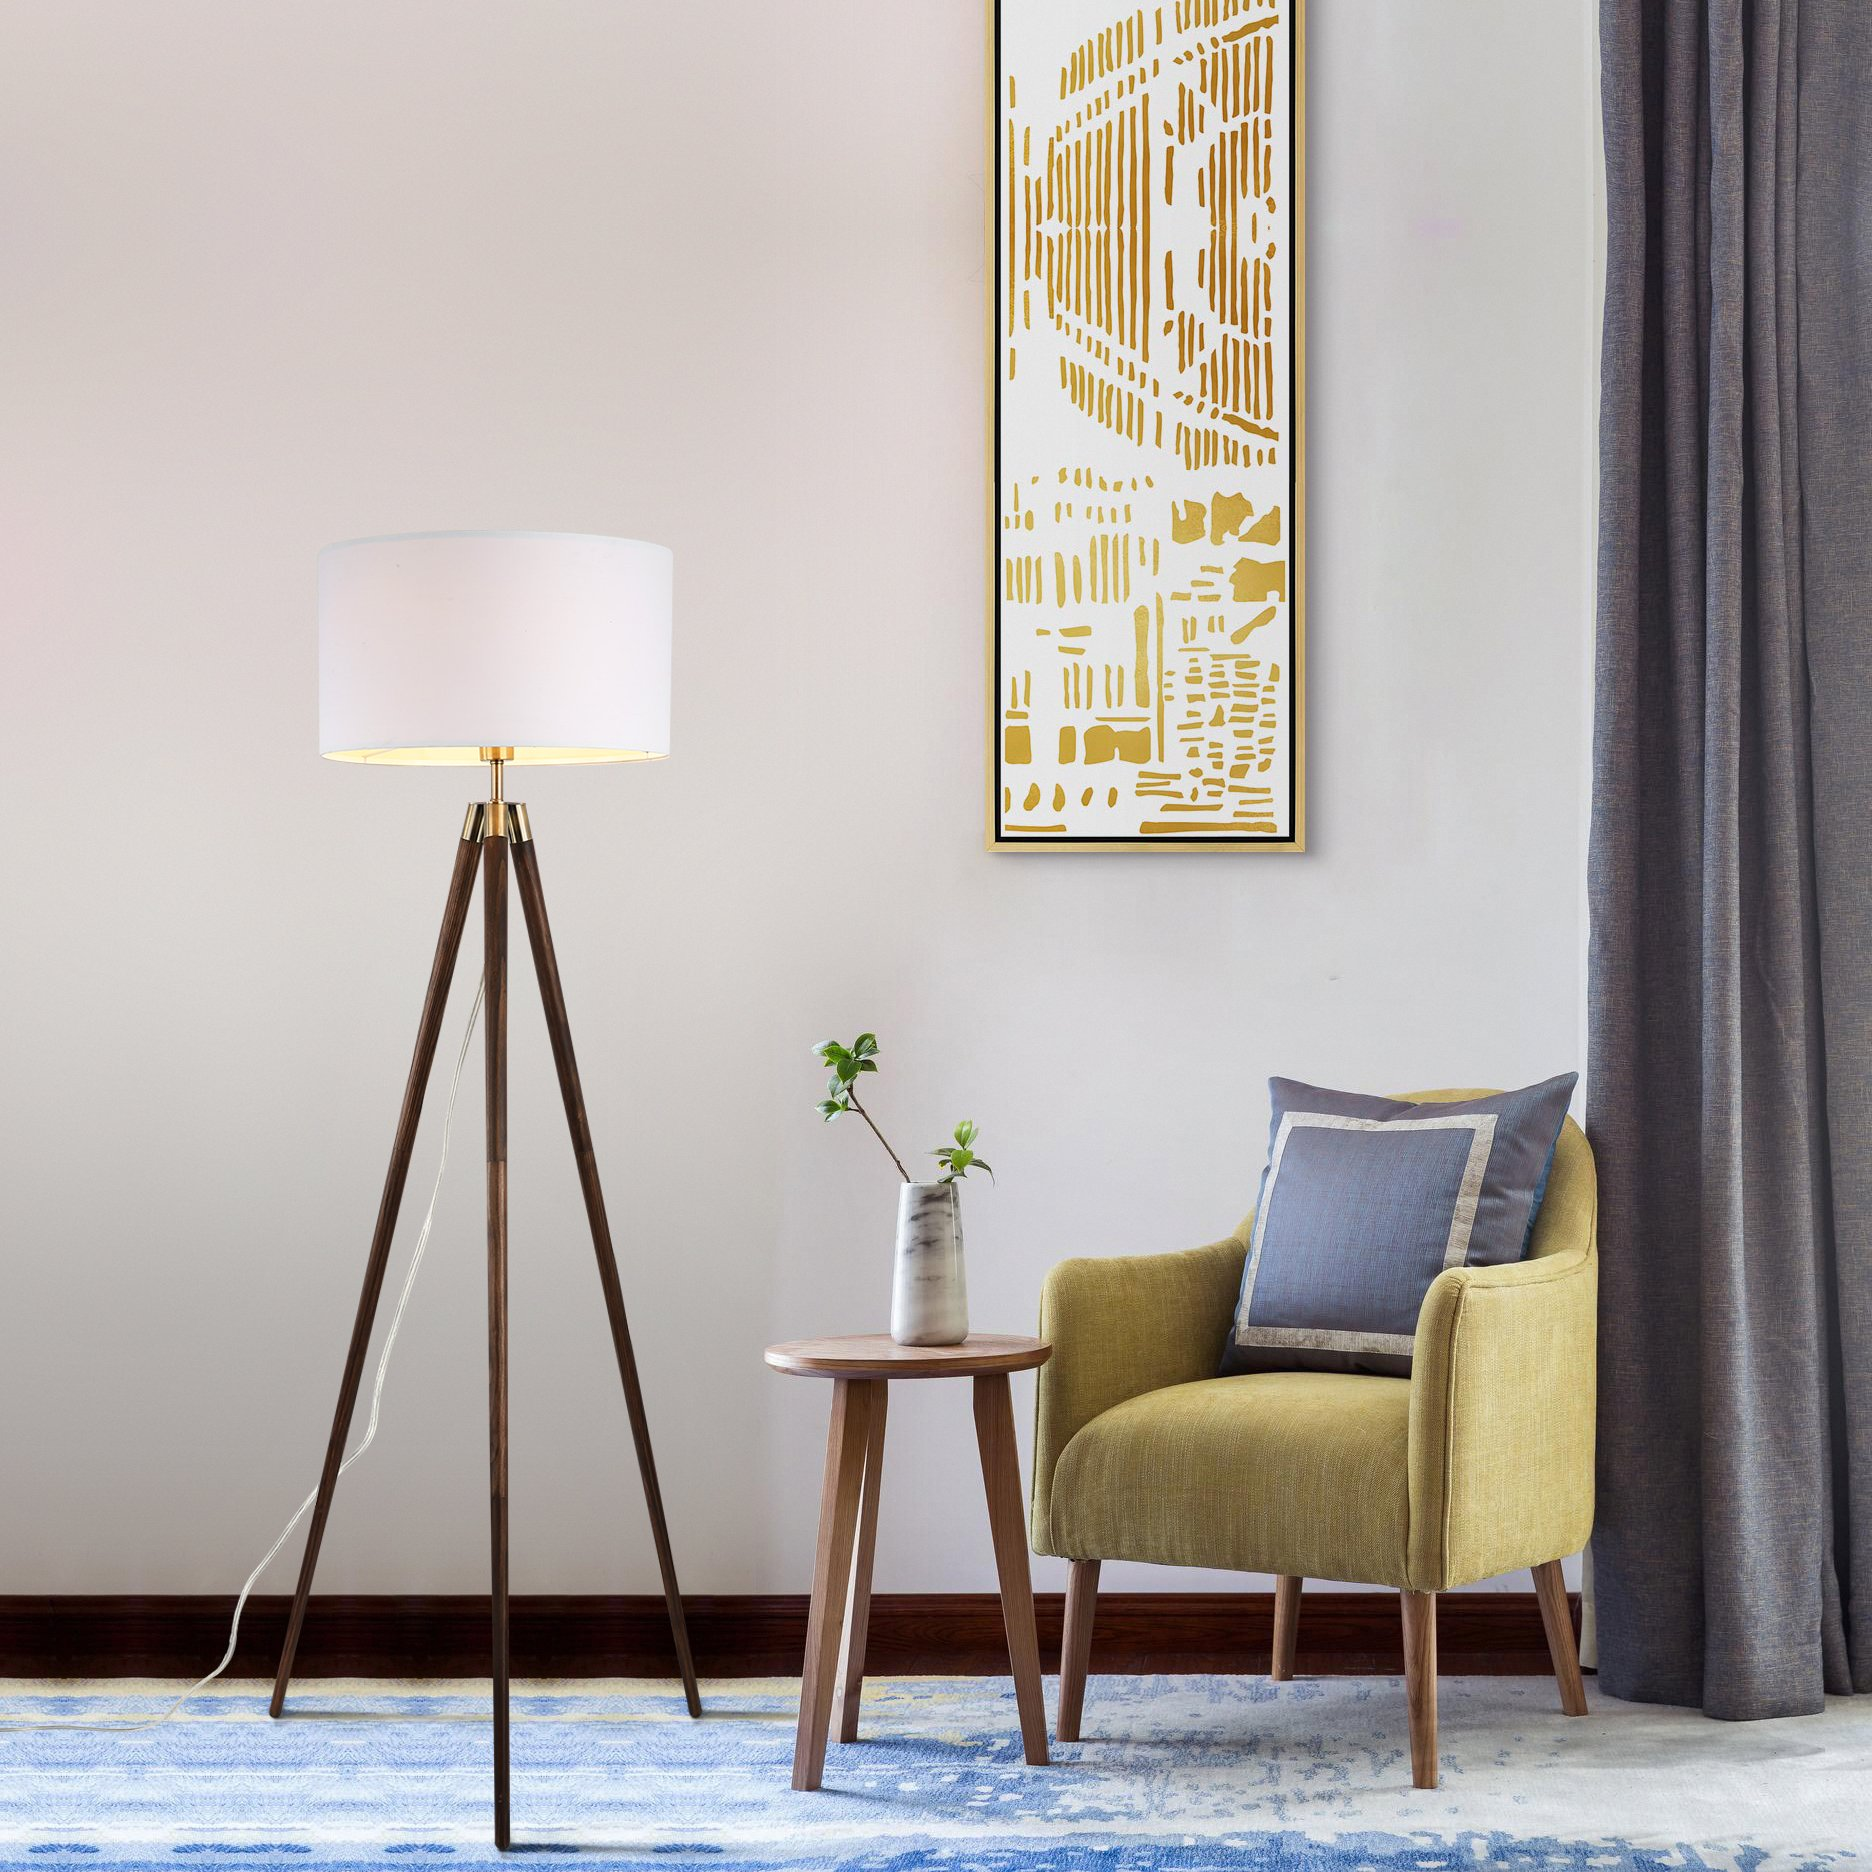 Light Society Celeste Tripod Floor Lamp, Walnut Wood Legs with Antique Brass Finish and White Fabric Shade, Mid Century Contemporary Modern Style (LS-F233-WAL) by Light Society (Image #5)